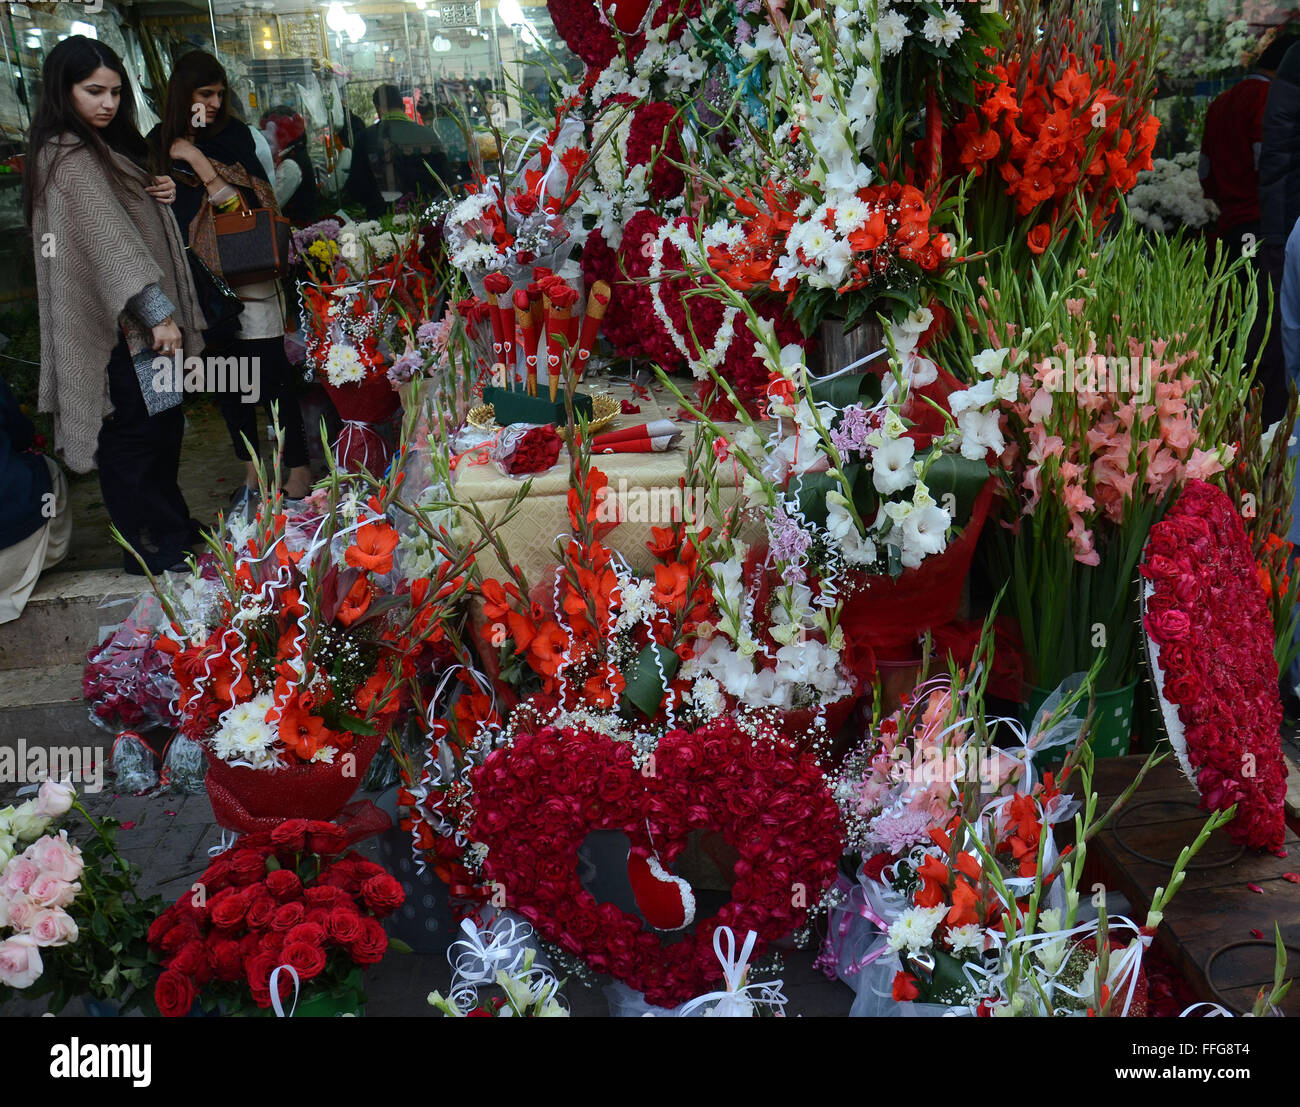 Lahore pakistan 13th feb 2016 pakistani citizens purchasing pakistani citizens purchasing fresh roses flowers bouquets and garlands for loved ones from a big flower whole sale market on the eve of world valentines izmirmasajfo